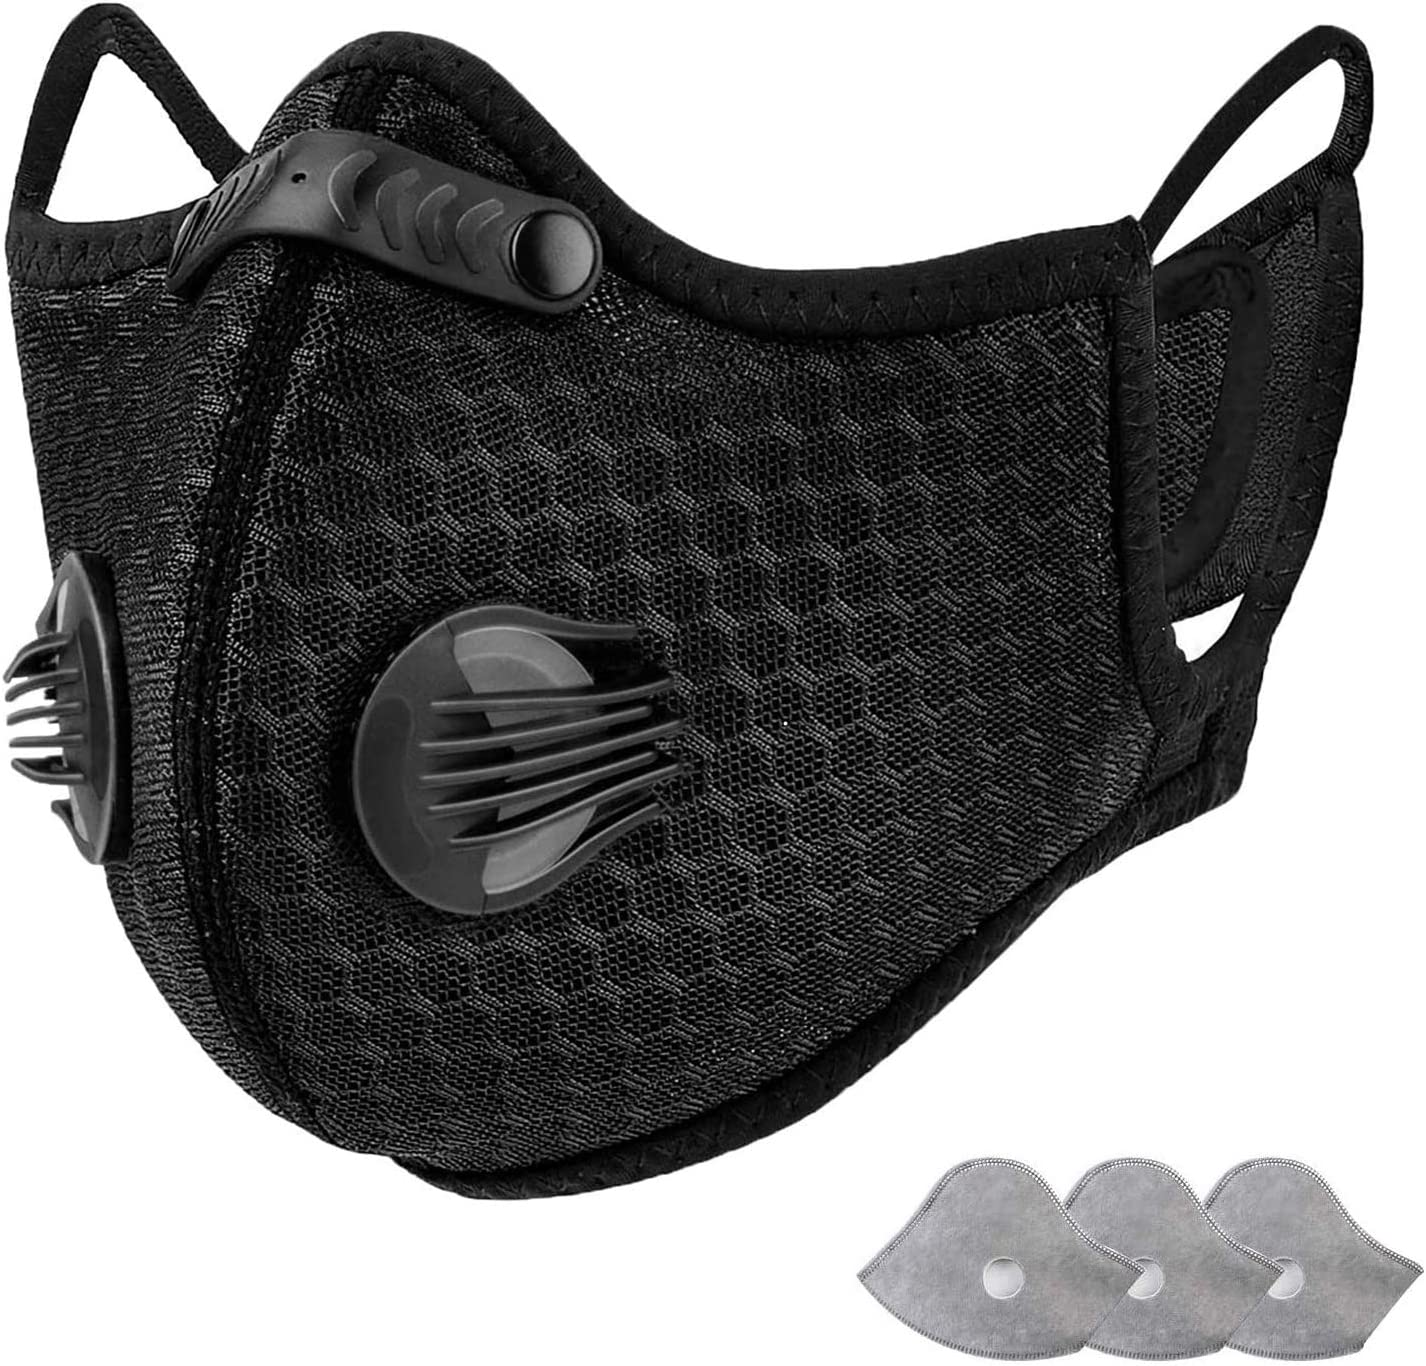 AstroAI Reusable Dust Face Mask with Filters - Upgraded Design for Better Personal Protection Adjustable for Running, Cycling, Outdoor Activities(Black, 1 Mask + 3 Activated Carbon Filters Included)